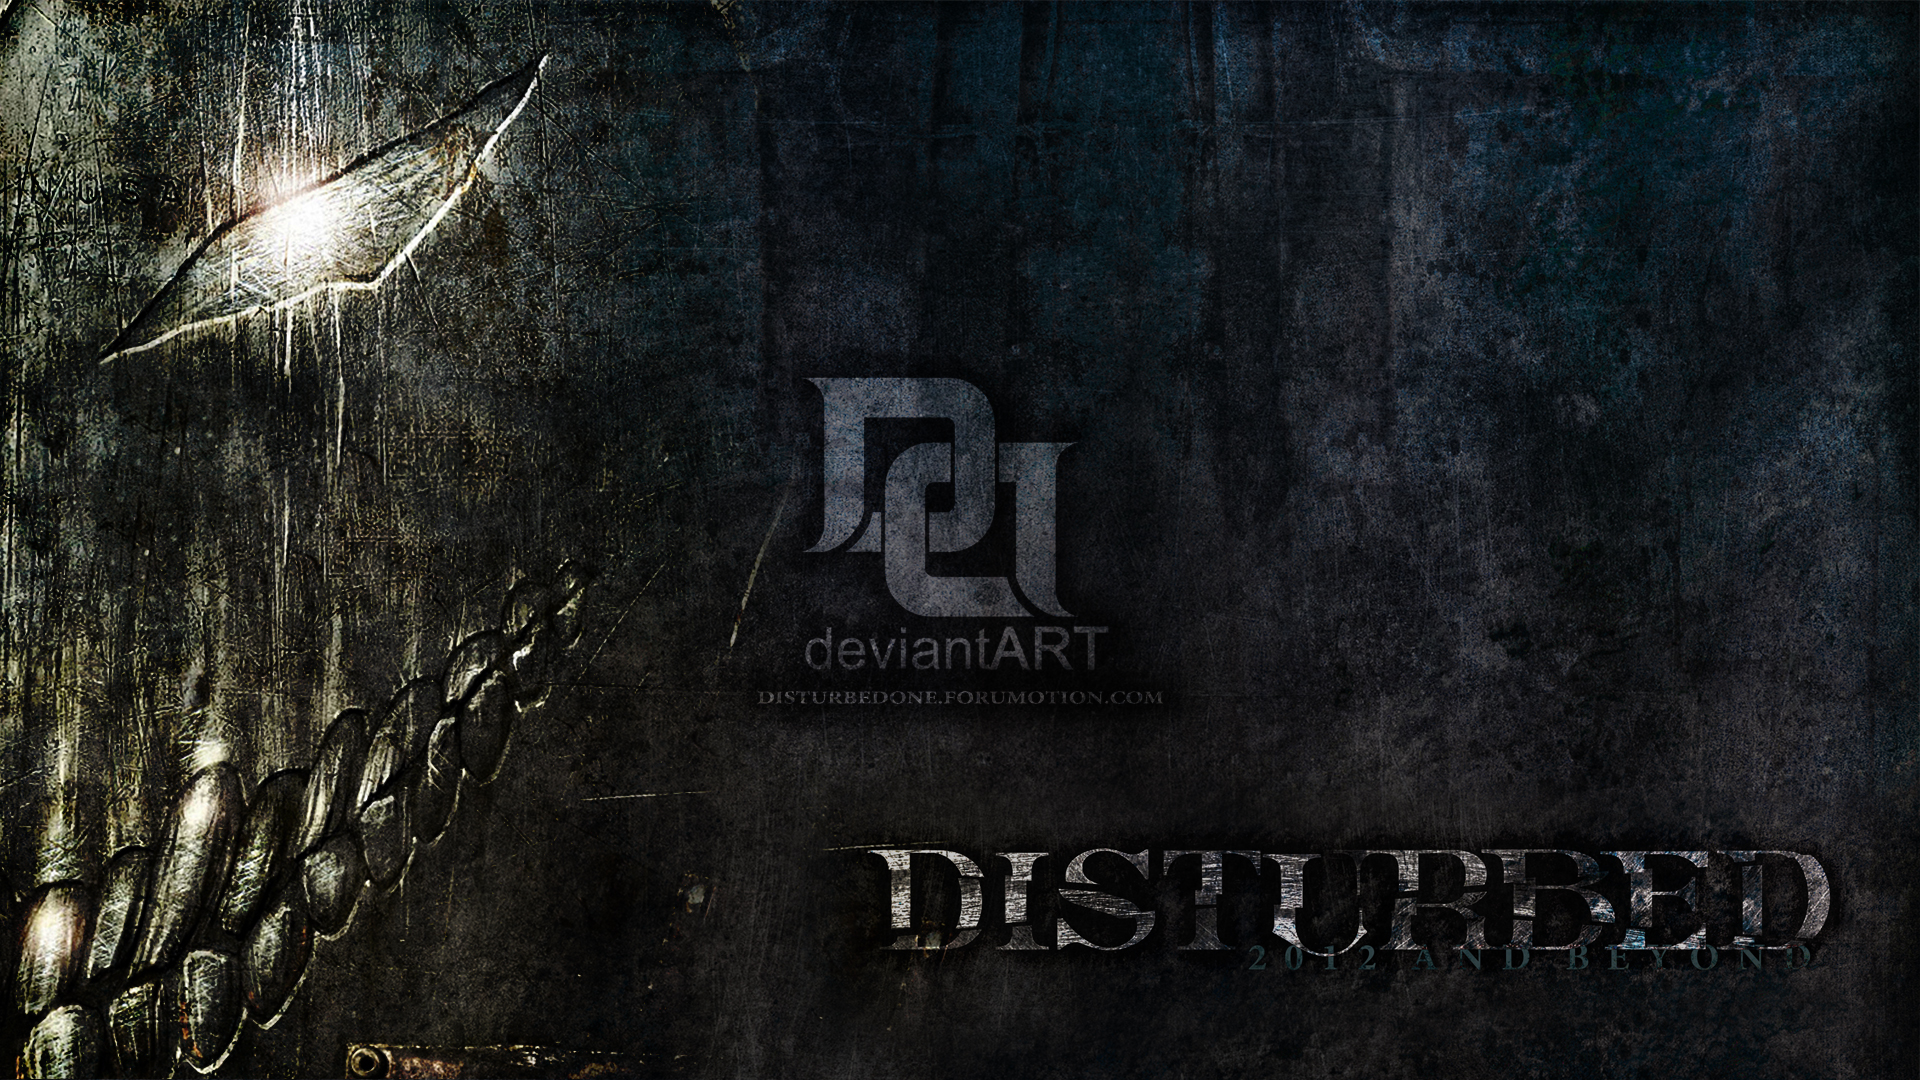 Disturbed - The Collection by morbustelevision2 Disturbed - The Collection  by morbustelevision2